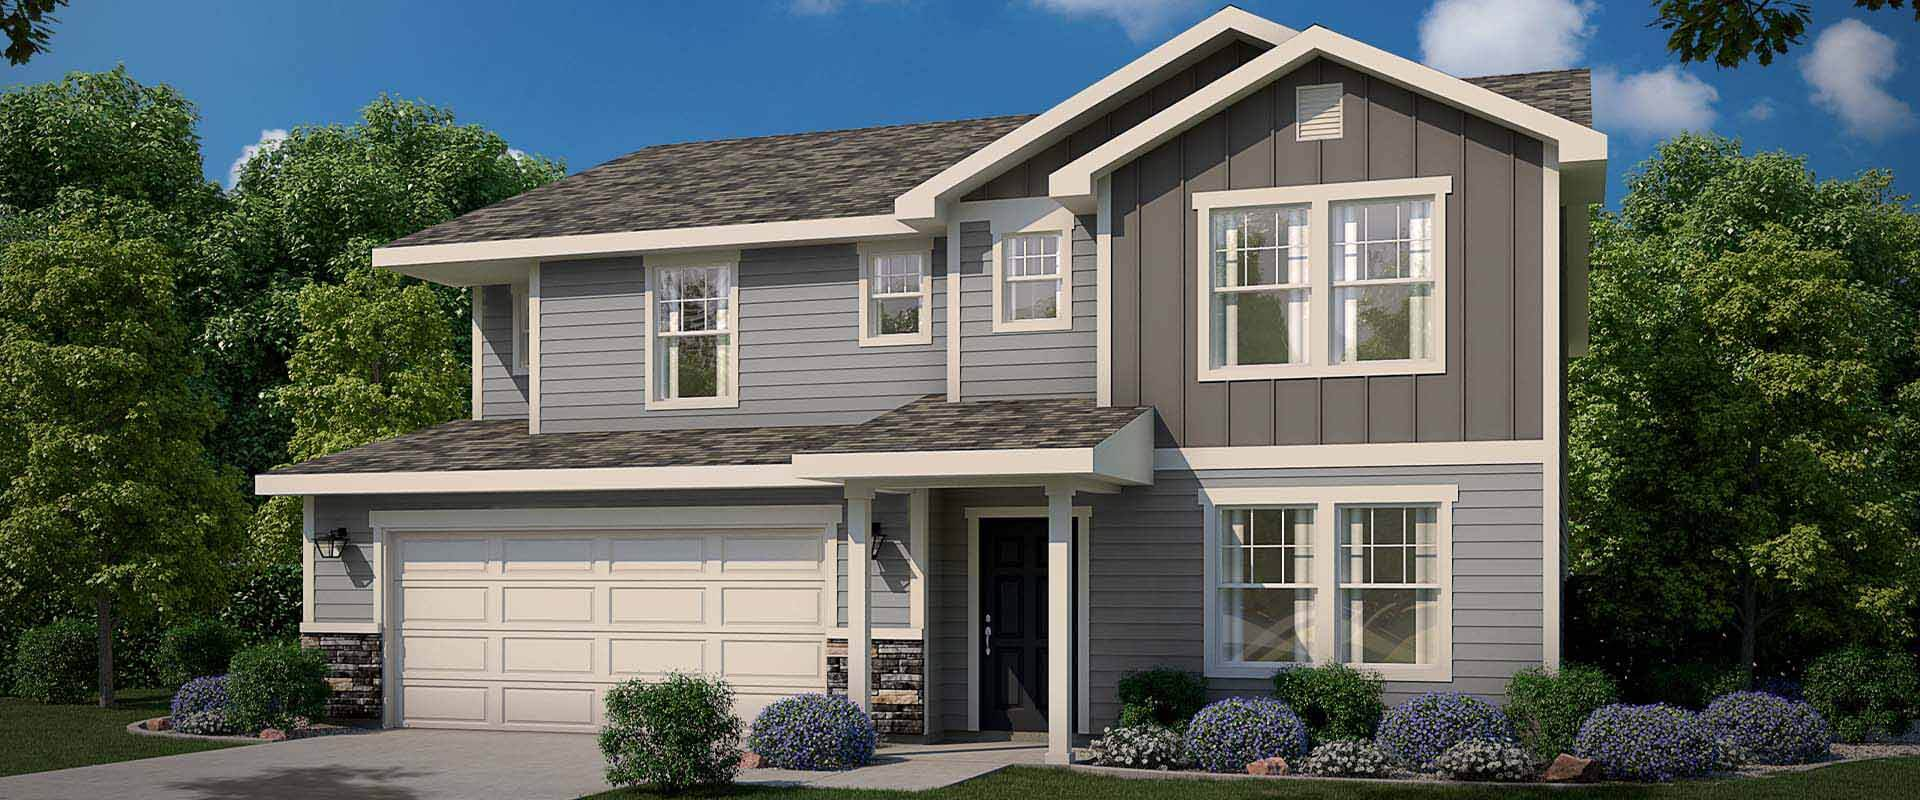 Spruce-Country-new-homes-boise-idaho-hubble-homes.jpg